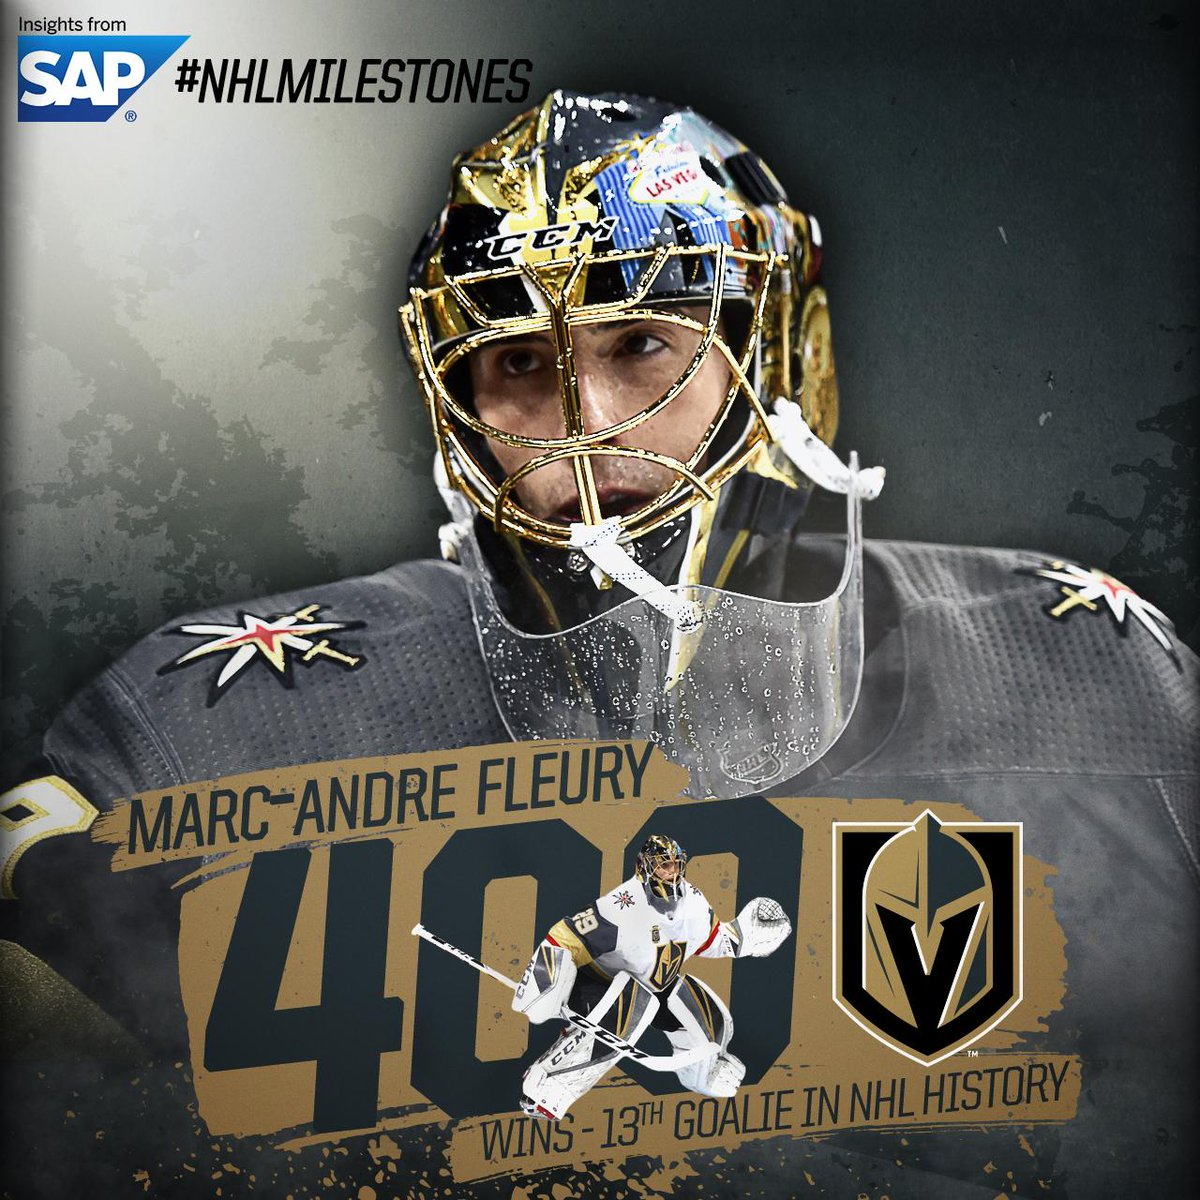 Aint no better Flower out there. 400 wins for Marc-Andre Fleury. Congrats on an unreal milestone! #NHLMilestones via @SAPSports: atnhl.com/2FA0bLX